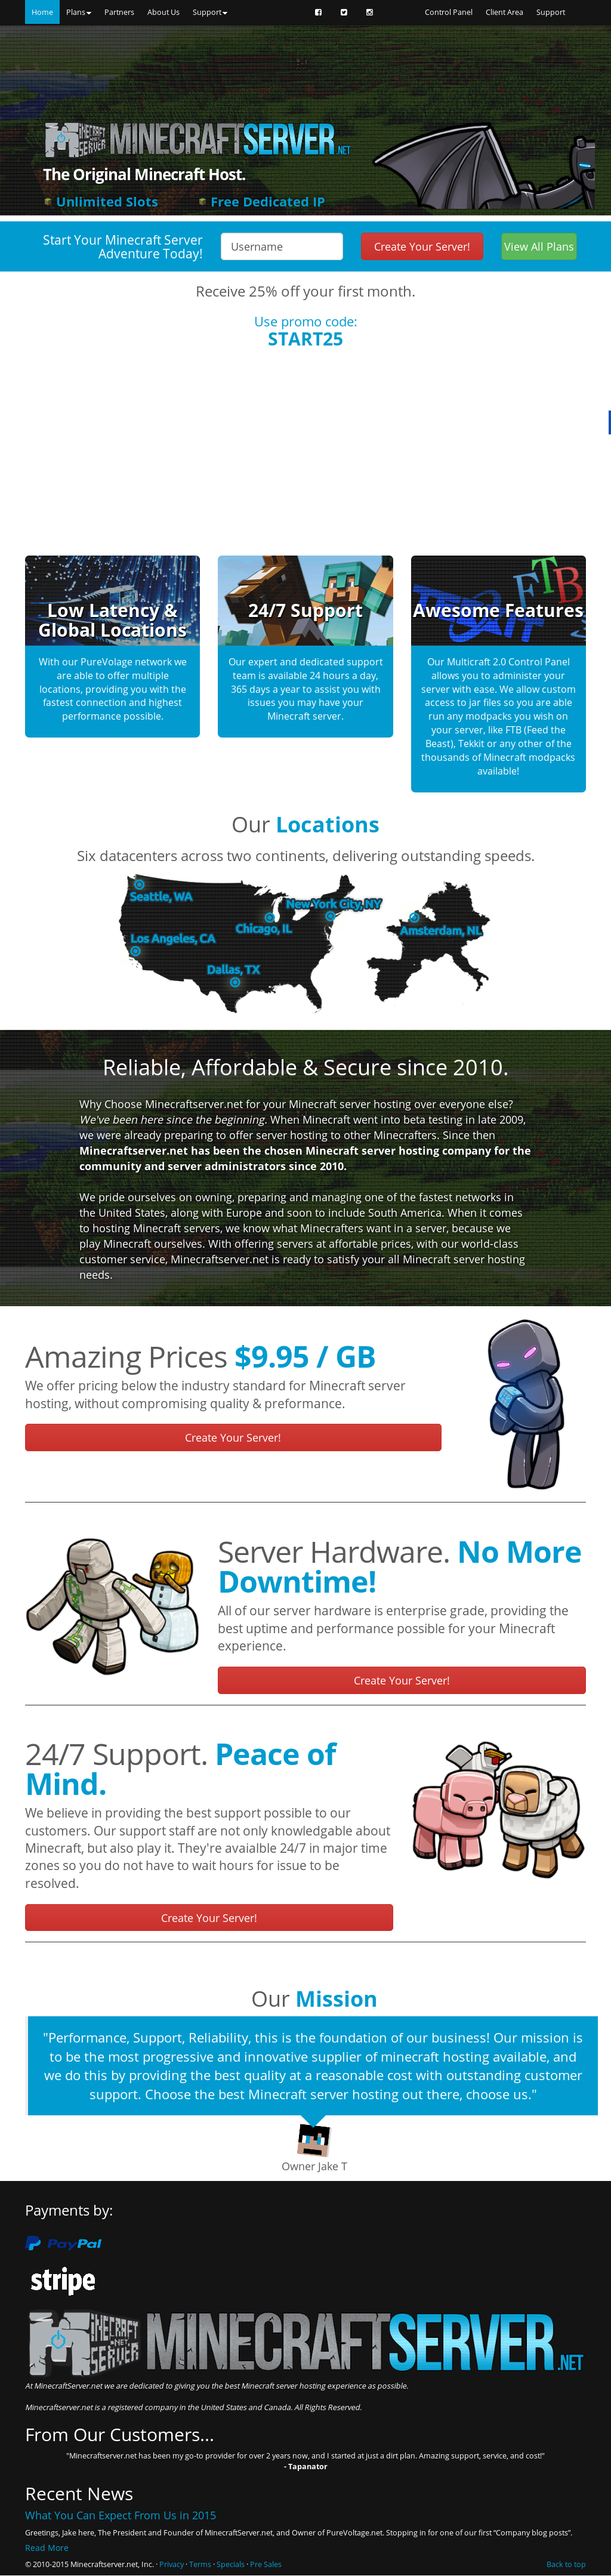 Minecraftserver Competitors, Revenue and Employees - Owler Company